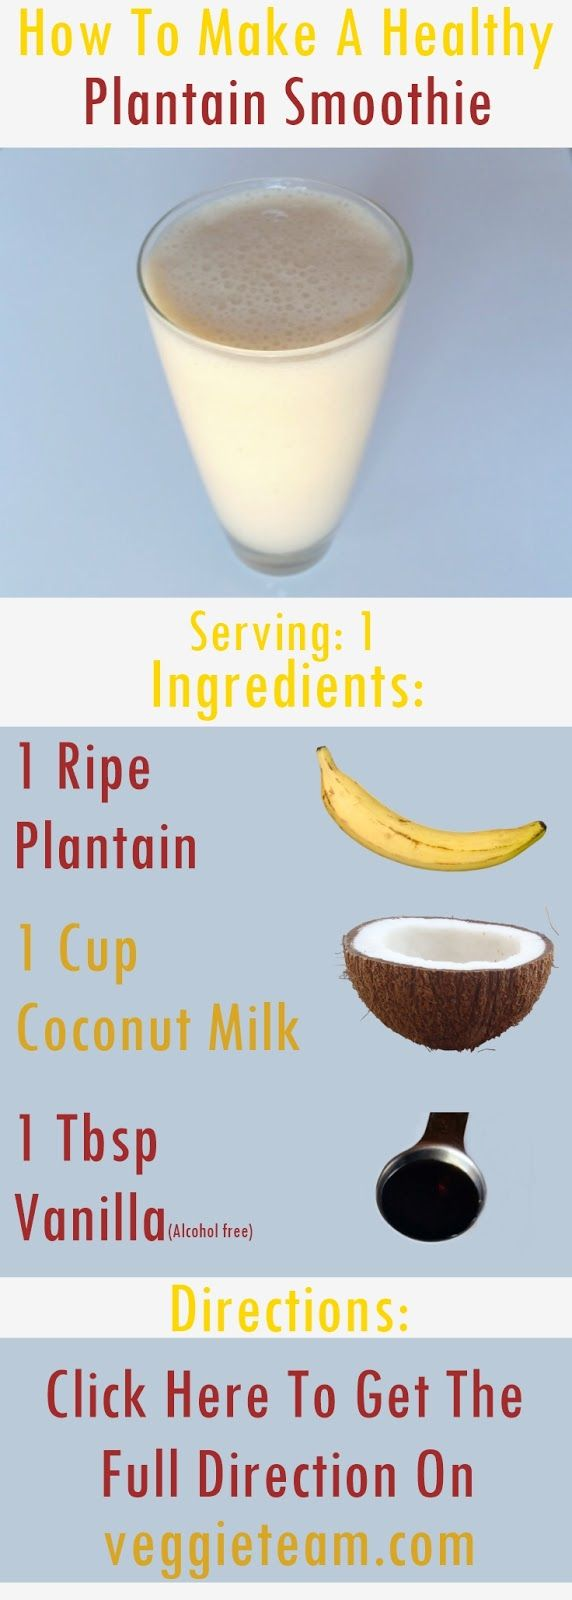 You are about to learn how to make a healthy plantain smoothie that will enrich your body with, fiber, vitamins, minerals, anti-oxidants, and phytochemicals that will help to detox your body and boost your immune system...